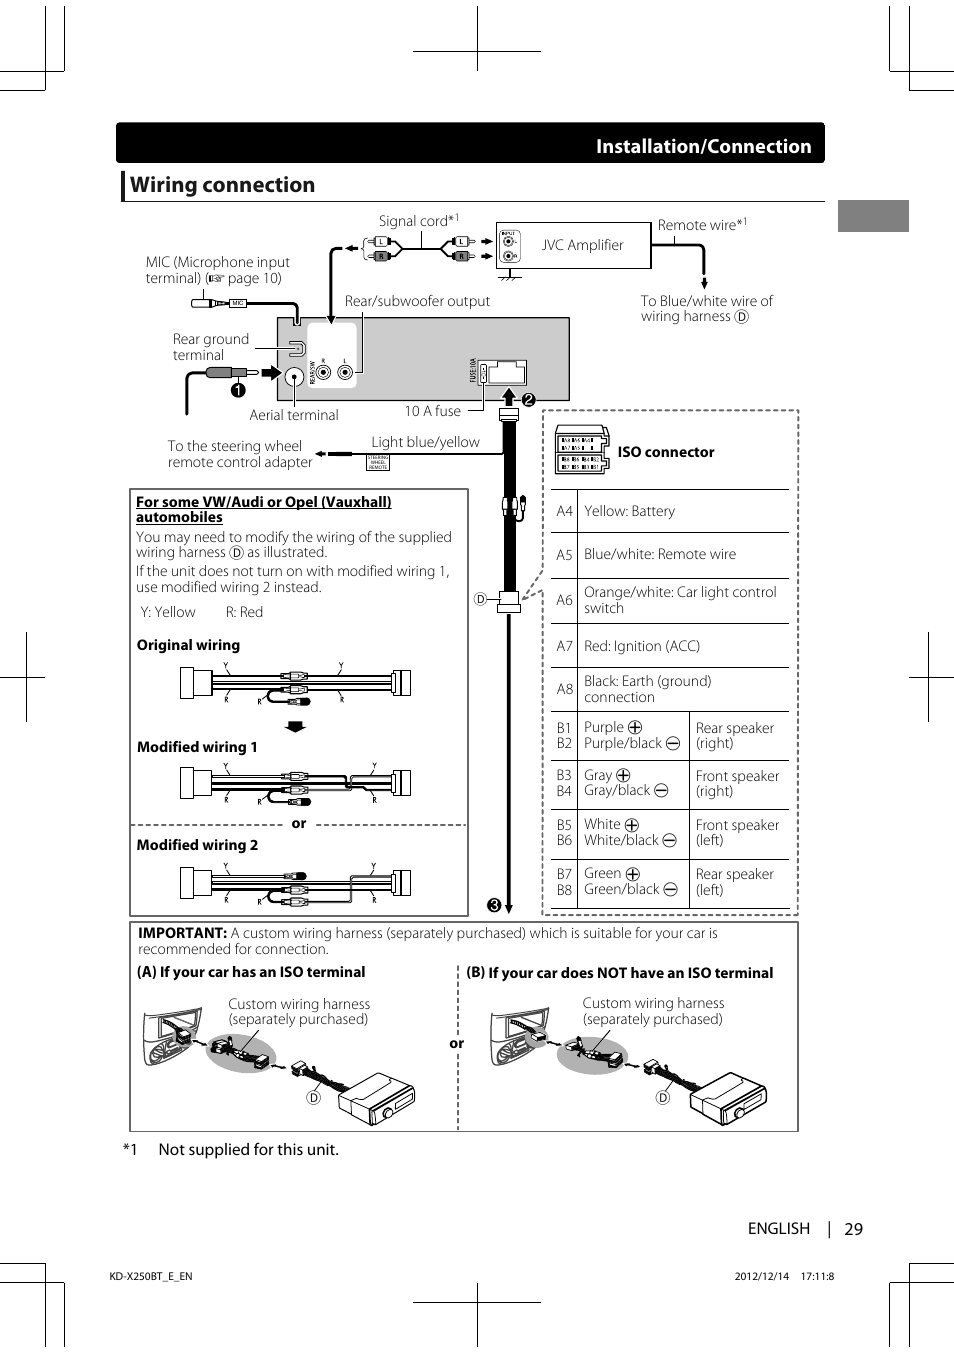 medium resolution of jvc kd x250bt wiring diagram wiring librarywiring connection installation connection jvc kd x250bt